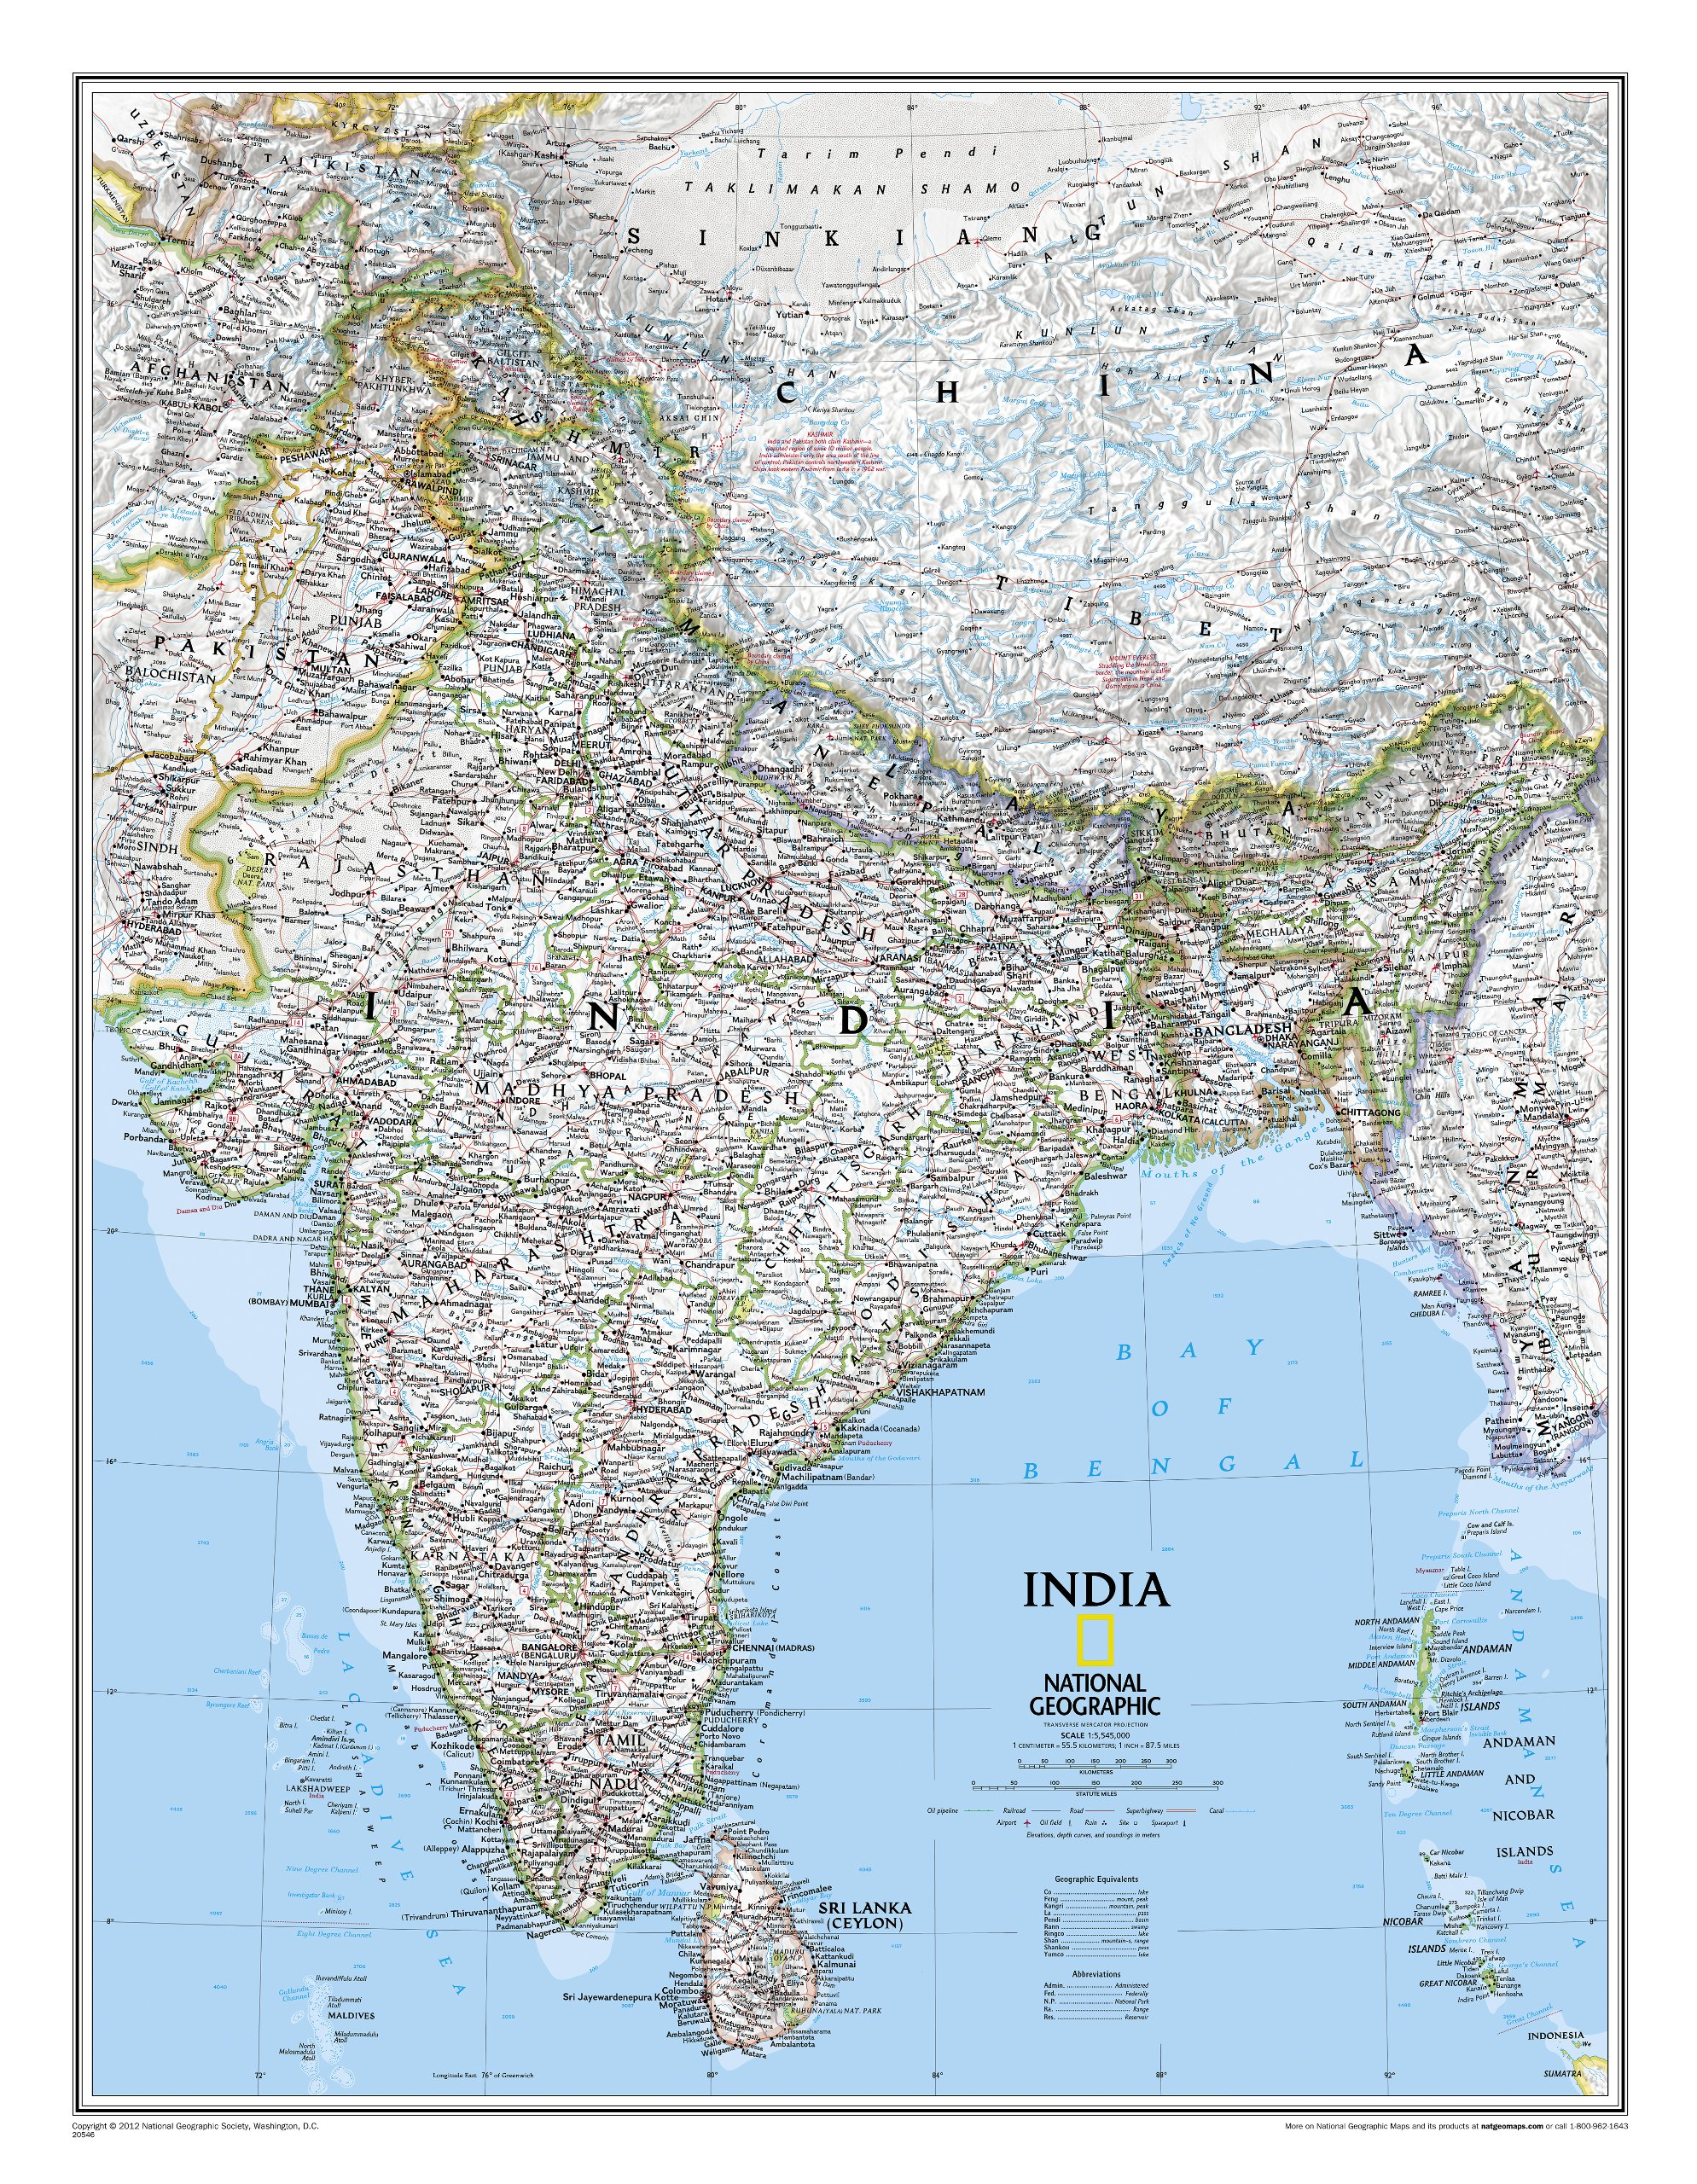 Wandkaart India, 60 x 77 cm | National Geographic